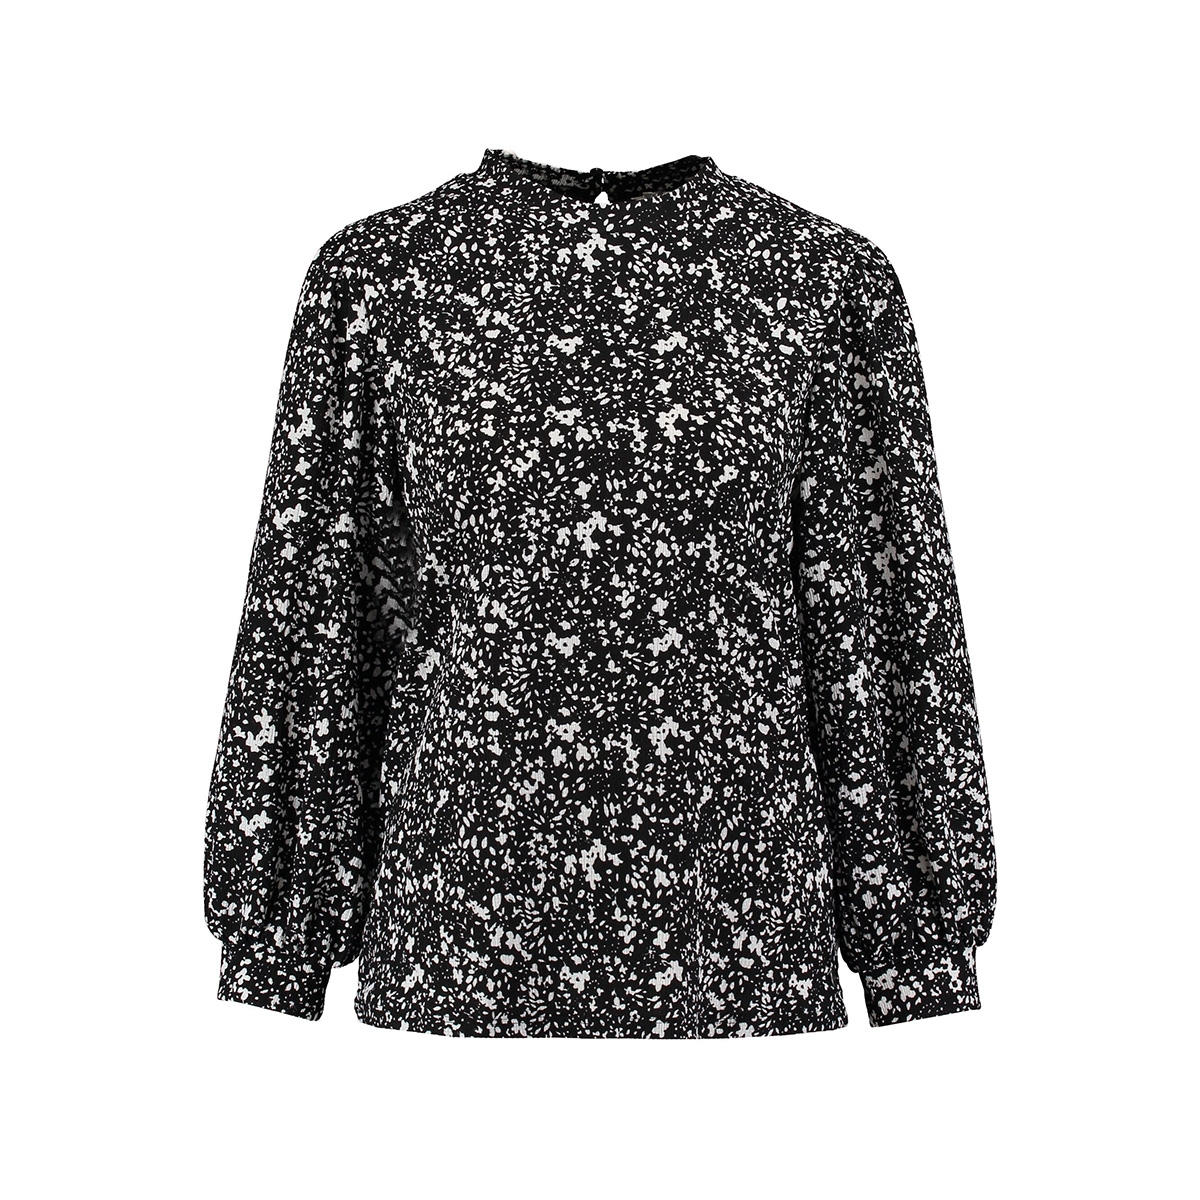 blouse met all over print ge000303 garcia blouse 60 black